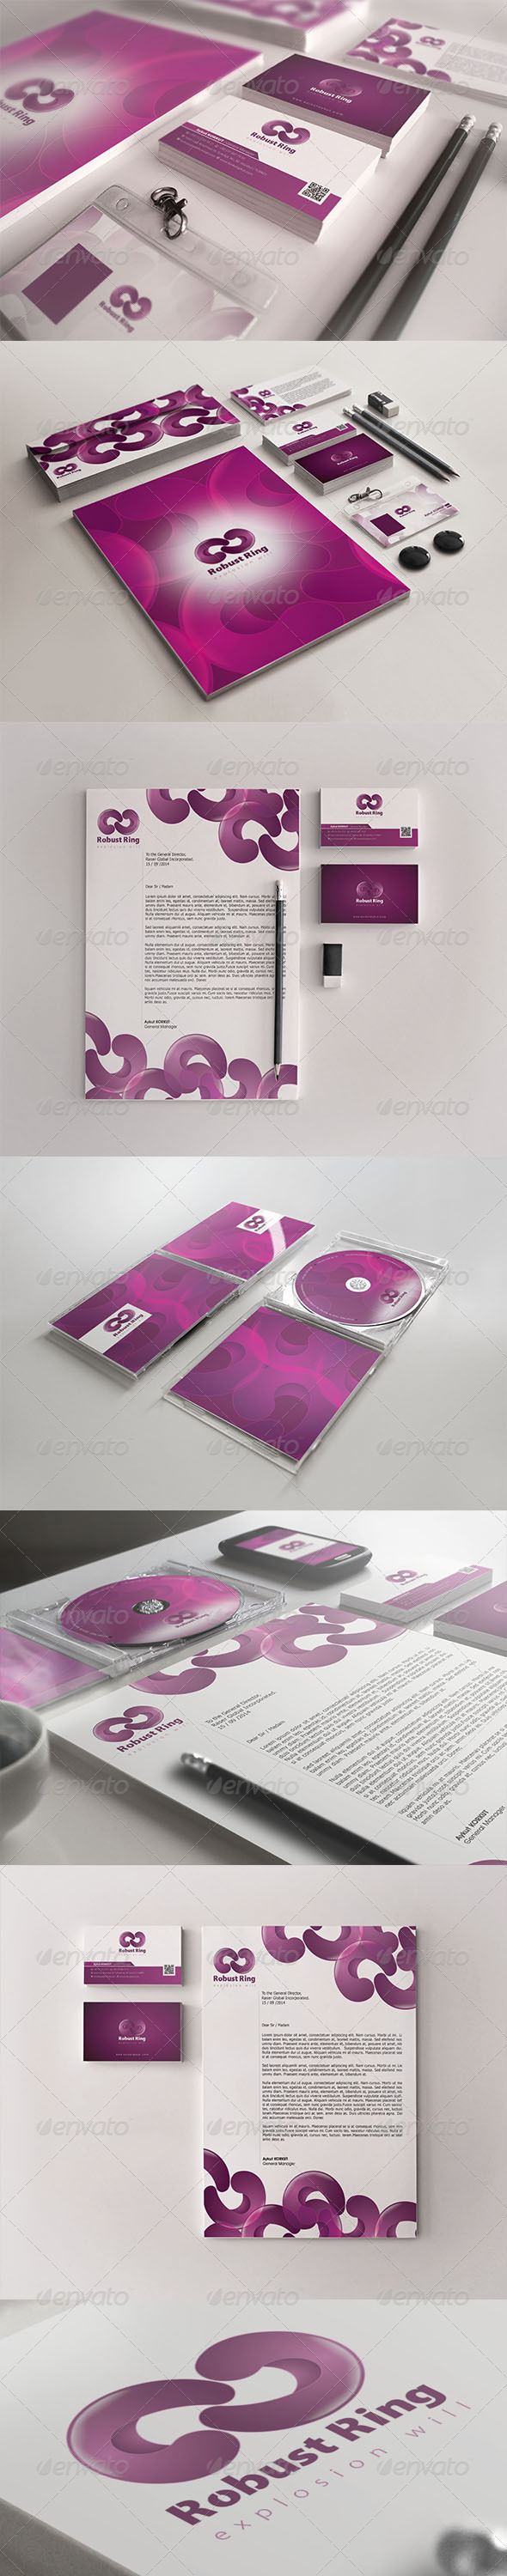 GraphicRiver Robust Ring Corporate Identity 7116631